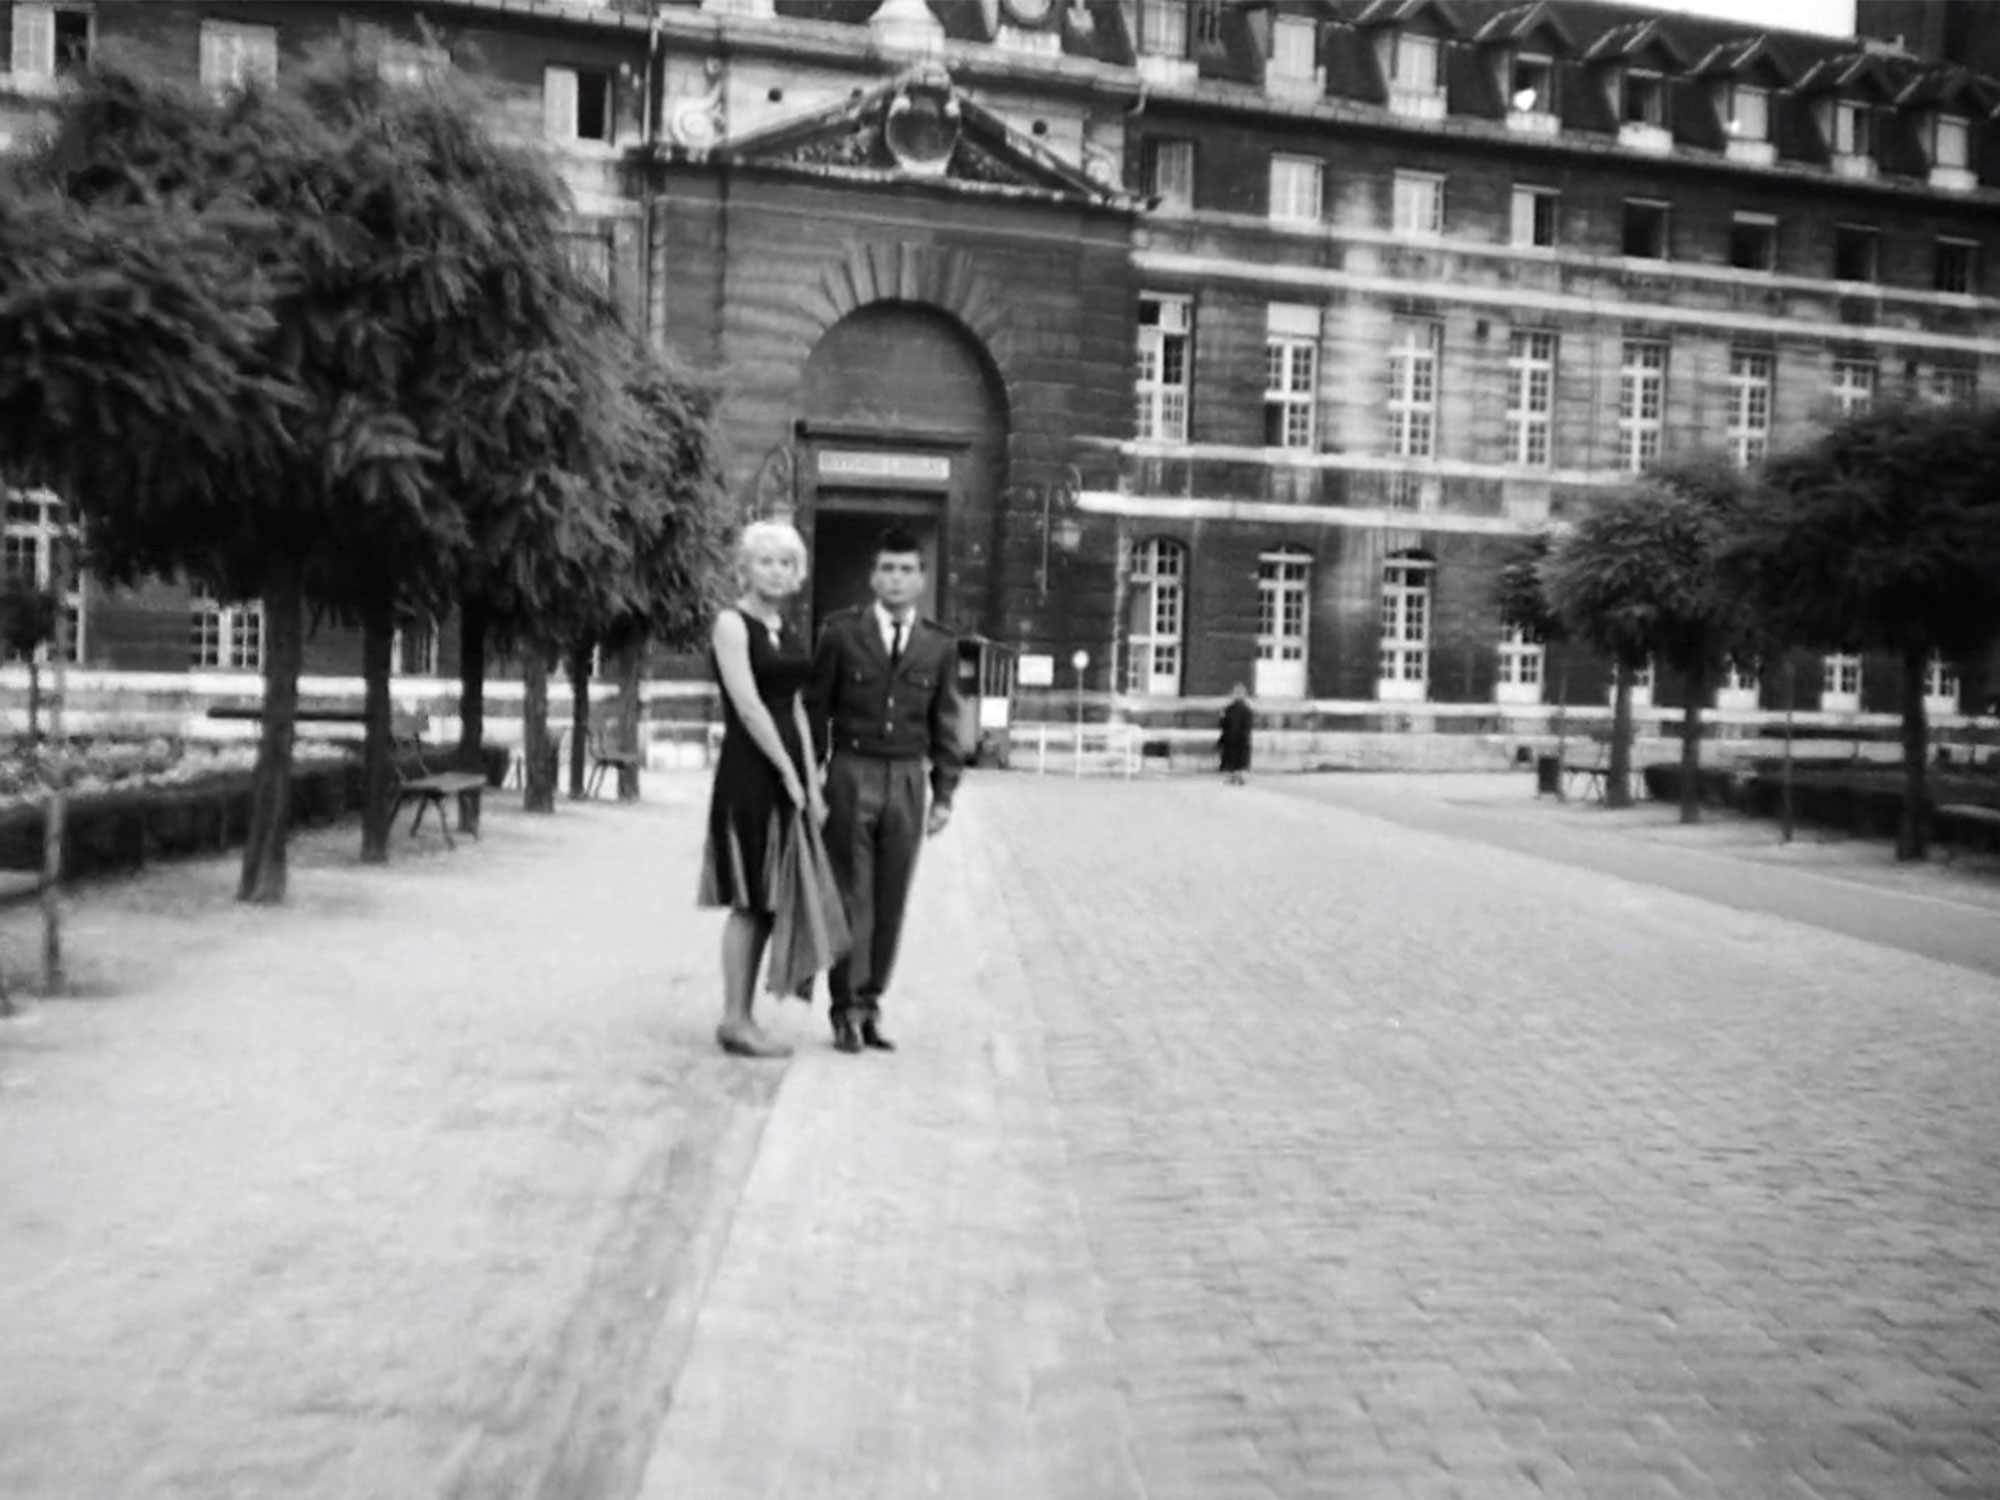 On Location: The final shot from Agnés Varda's Cleo from 5 to 7